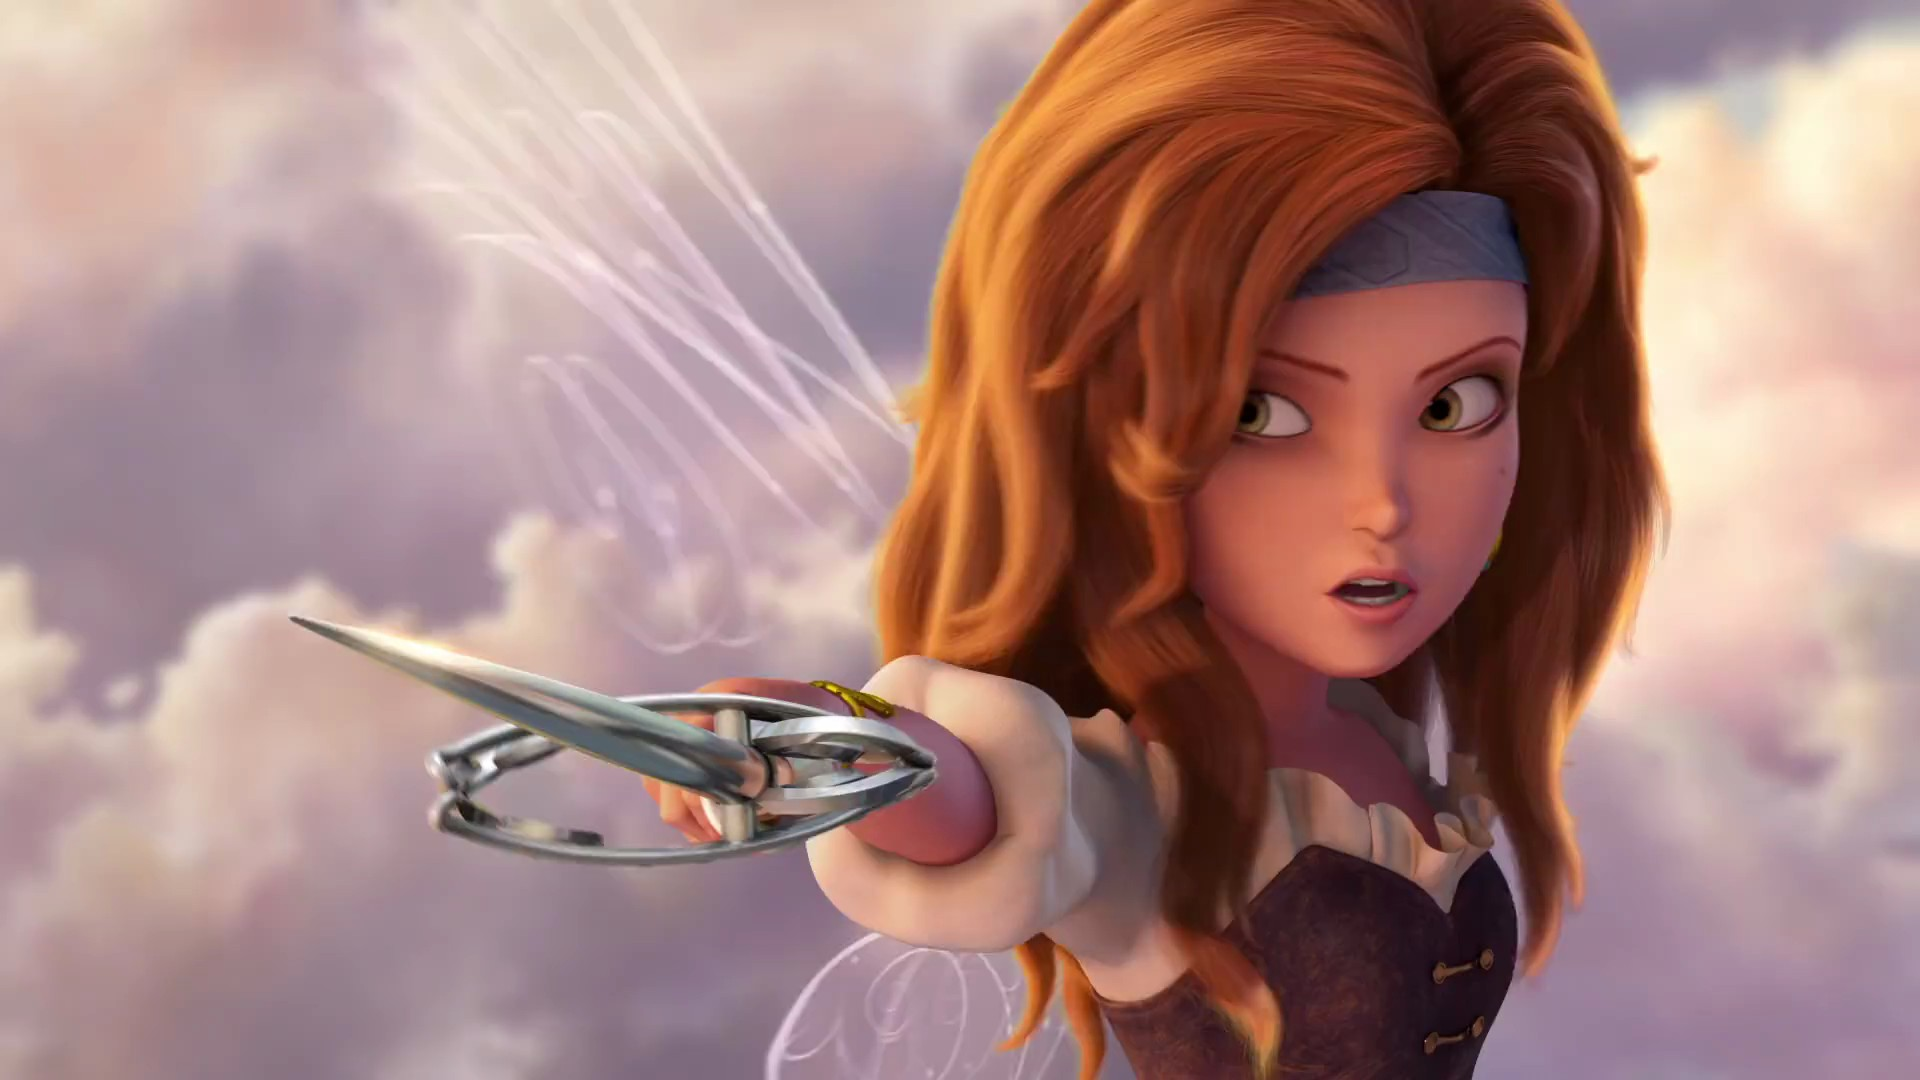 Tinker bell and the pirate fairy zarina